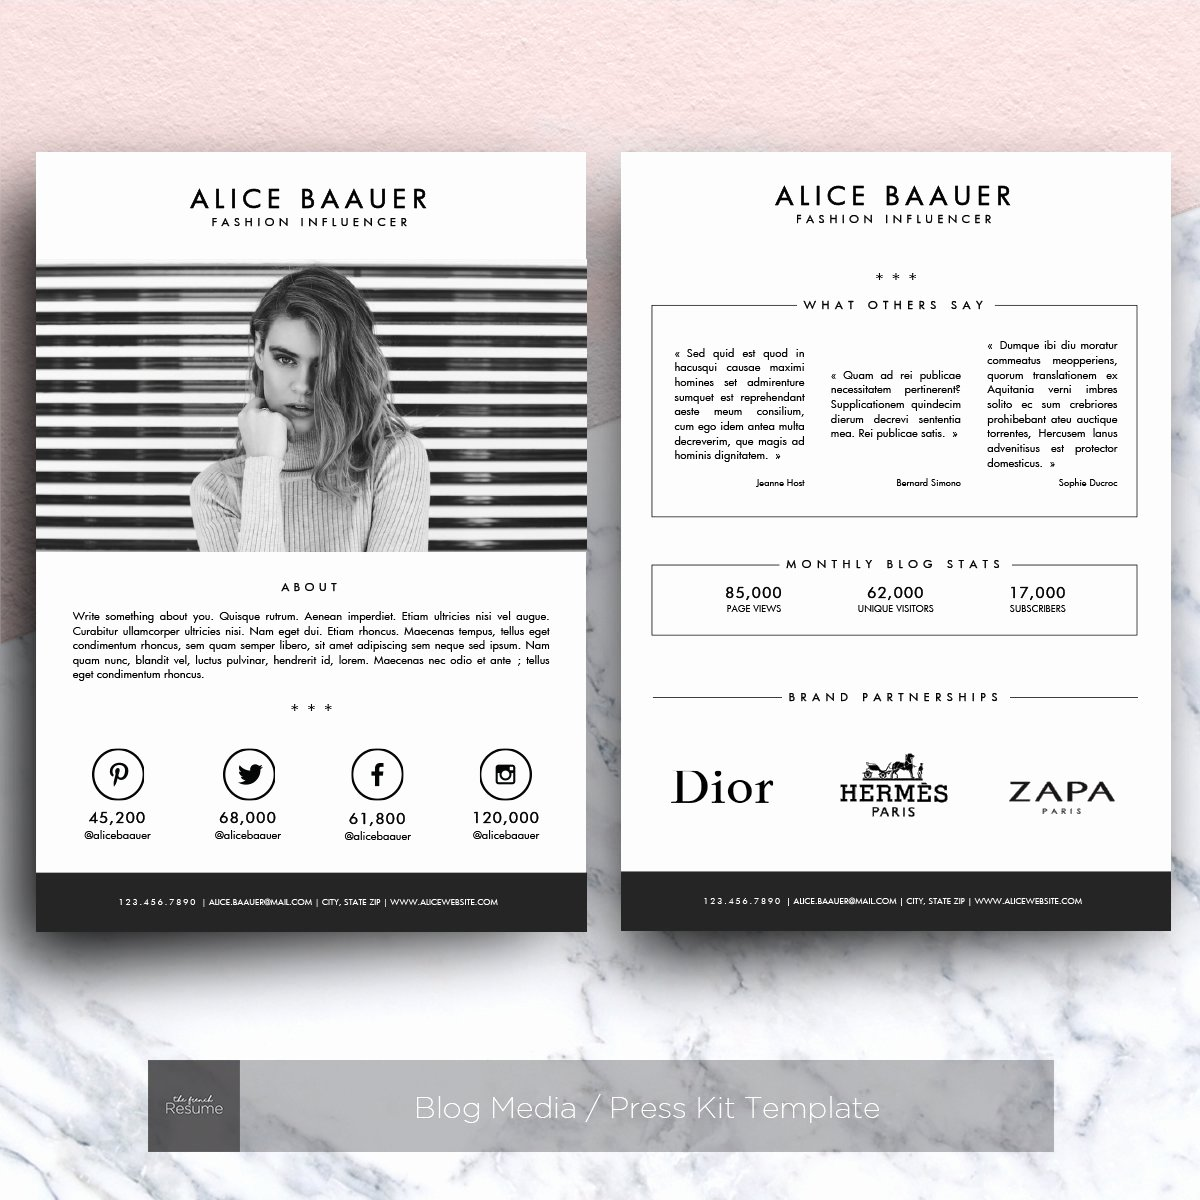 Press Kit Template Free Fresh Blog Media Press Kit Template Other Presentation